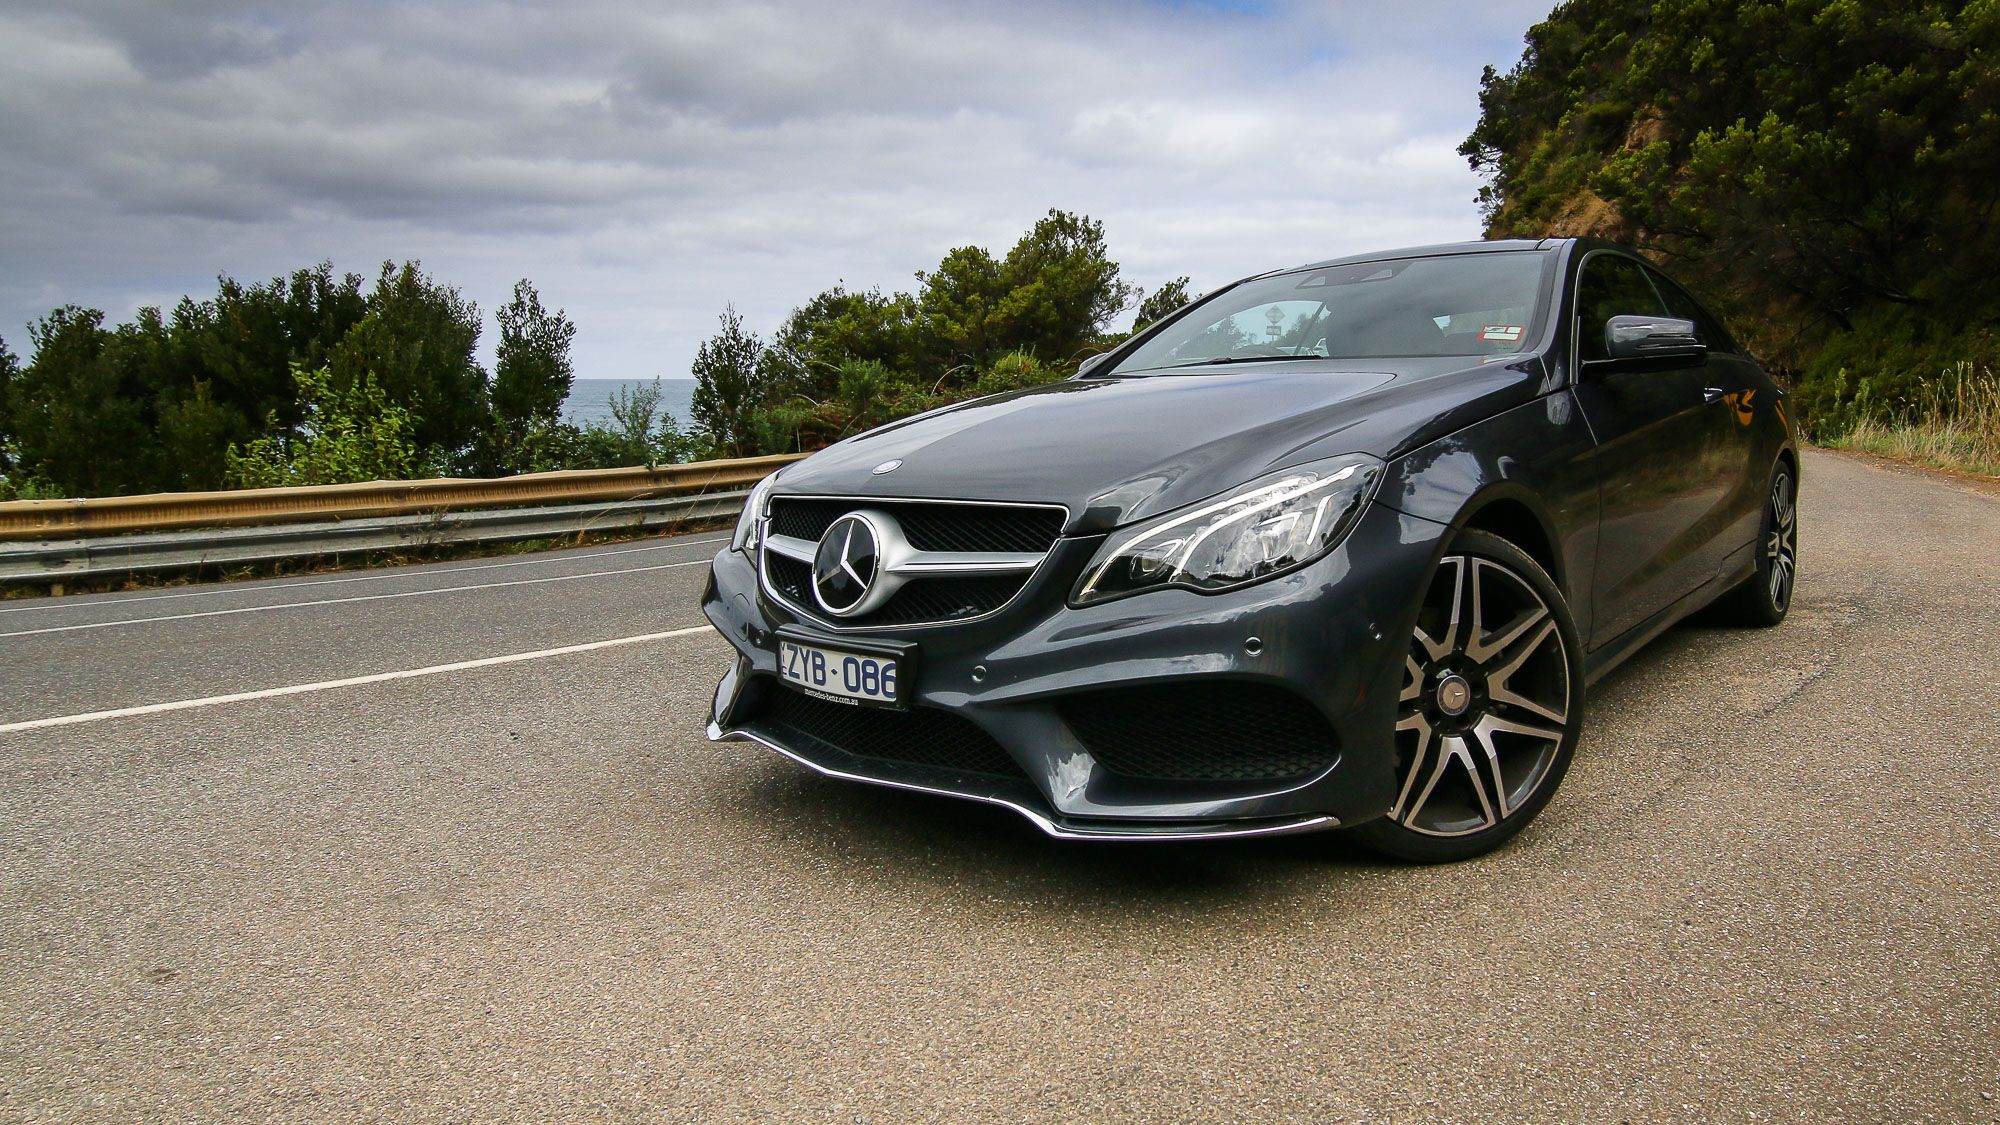 Mercedes-Benz E250 Coupe Review :: Wye River wedding weekender - http://www.caradvice.com.au/313857/mercedes-benz-e250-coupe-review-wye-river-wedding-weekender/